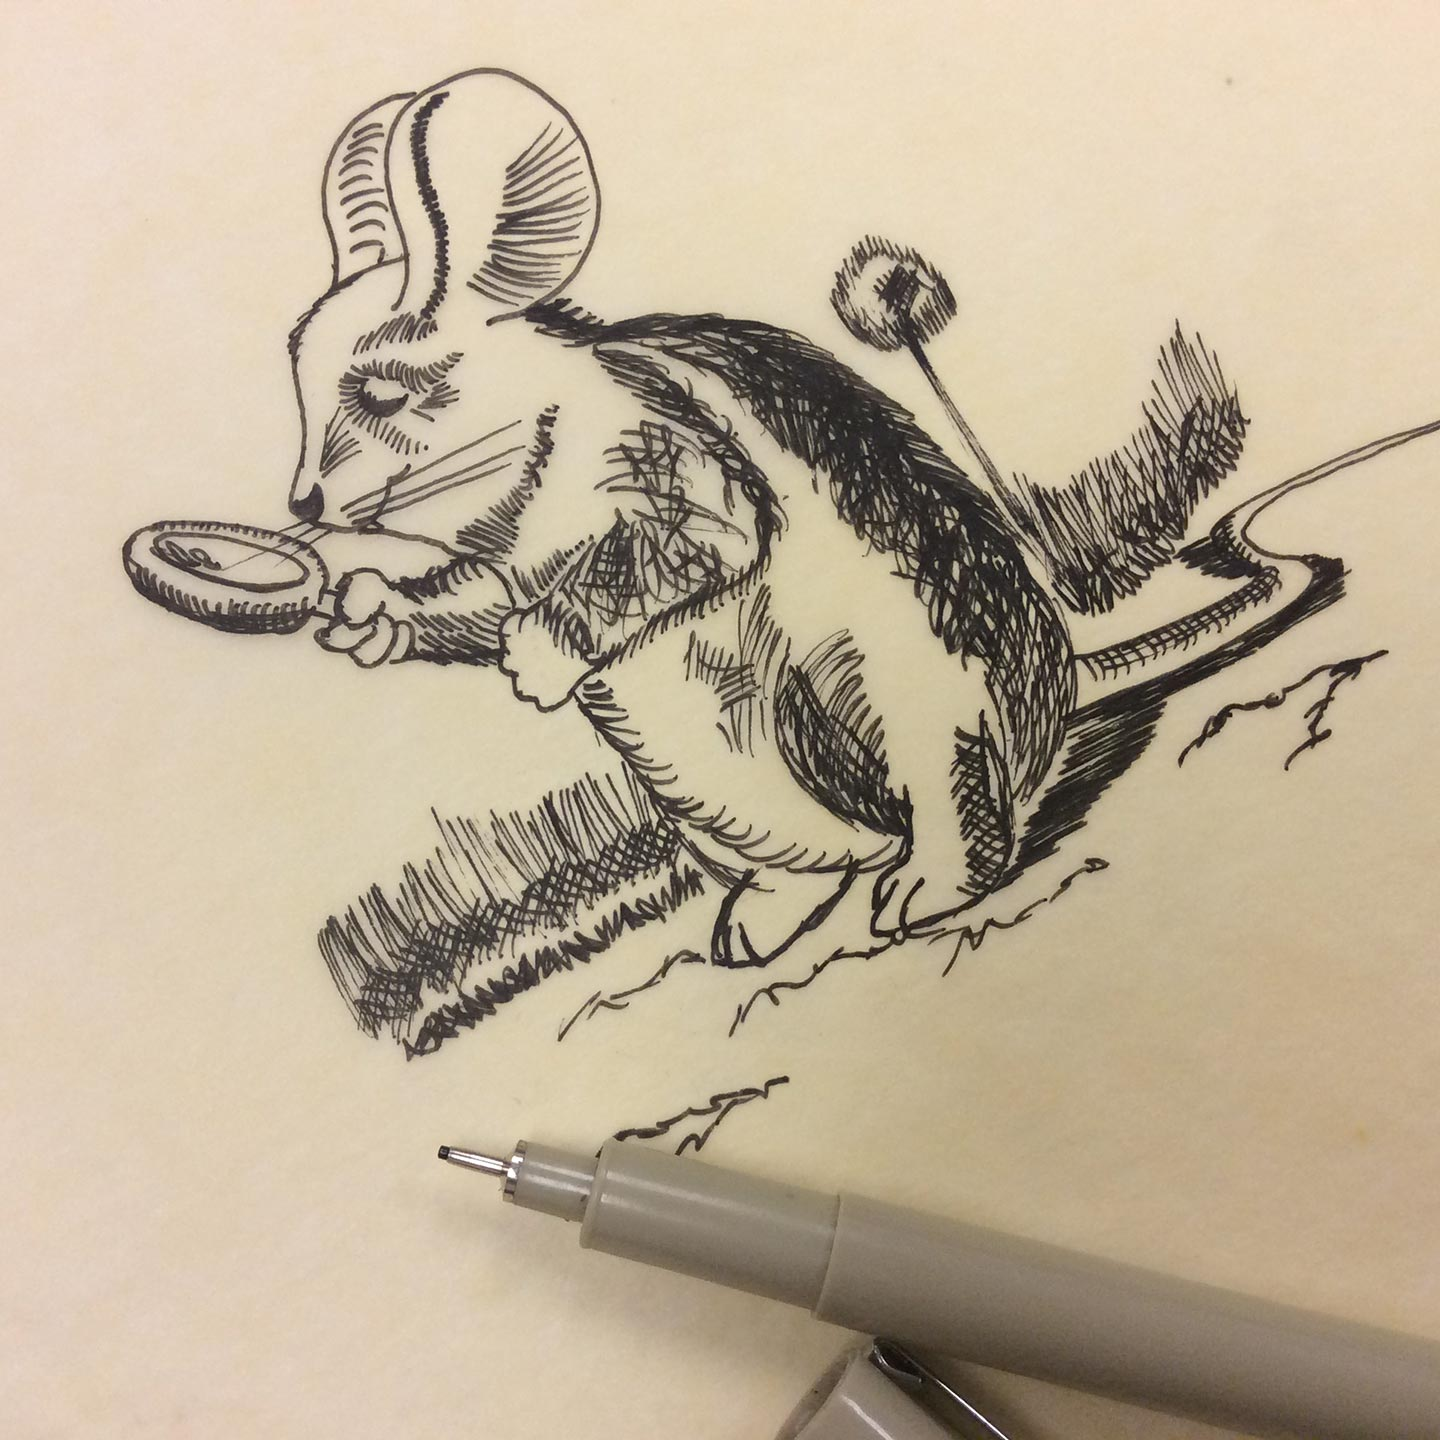 Close-up of a pen and a sketch of a mouse holding a magnifying glass